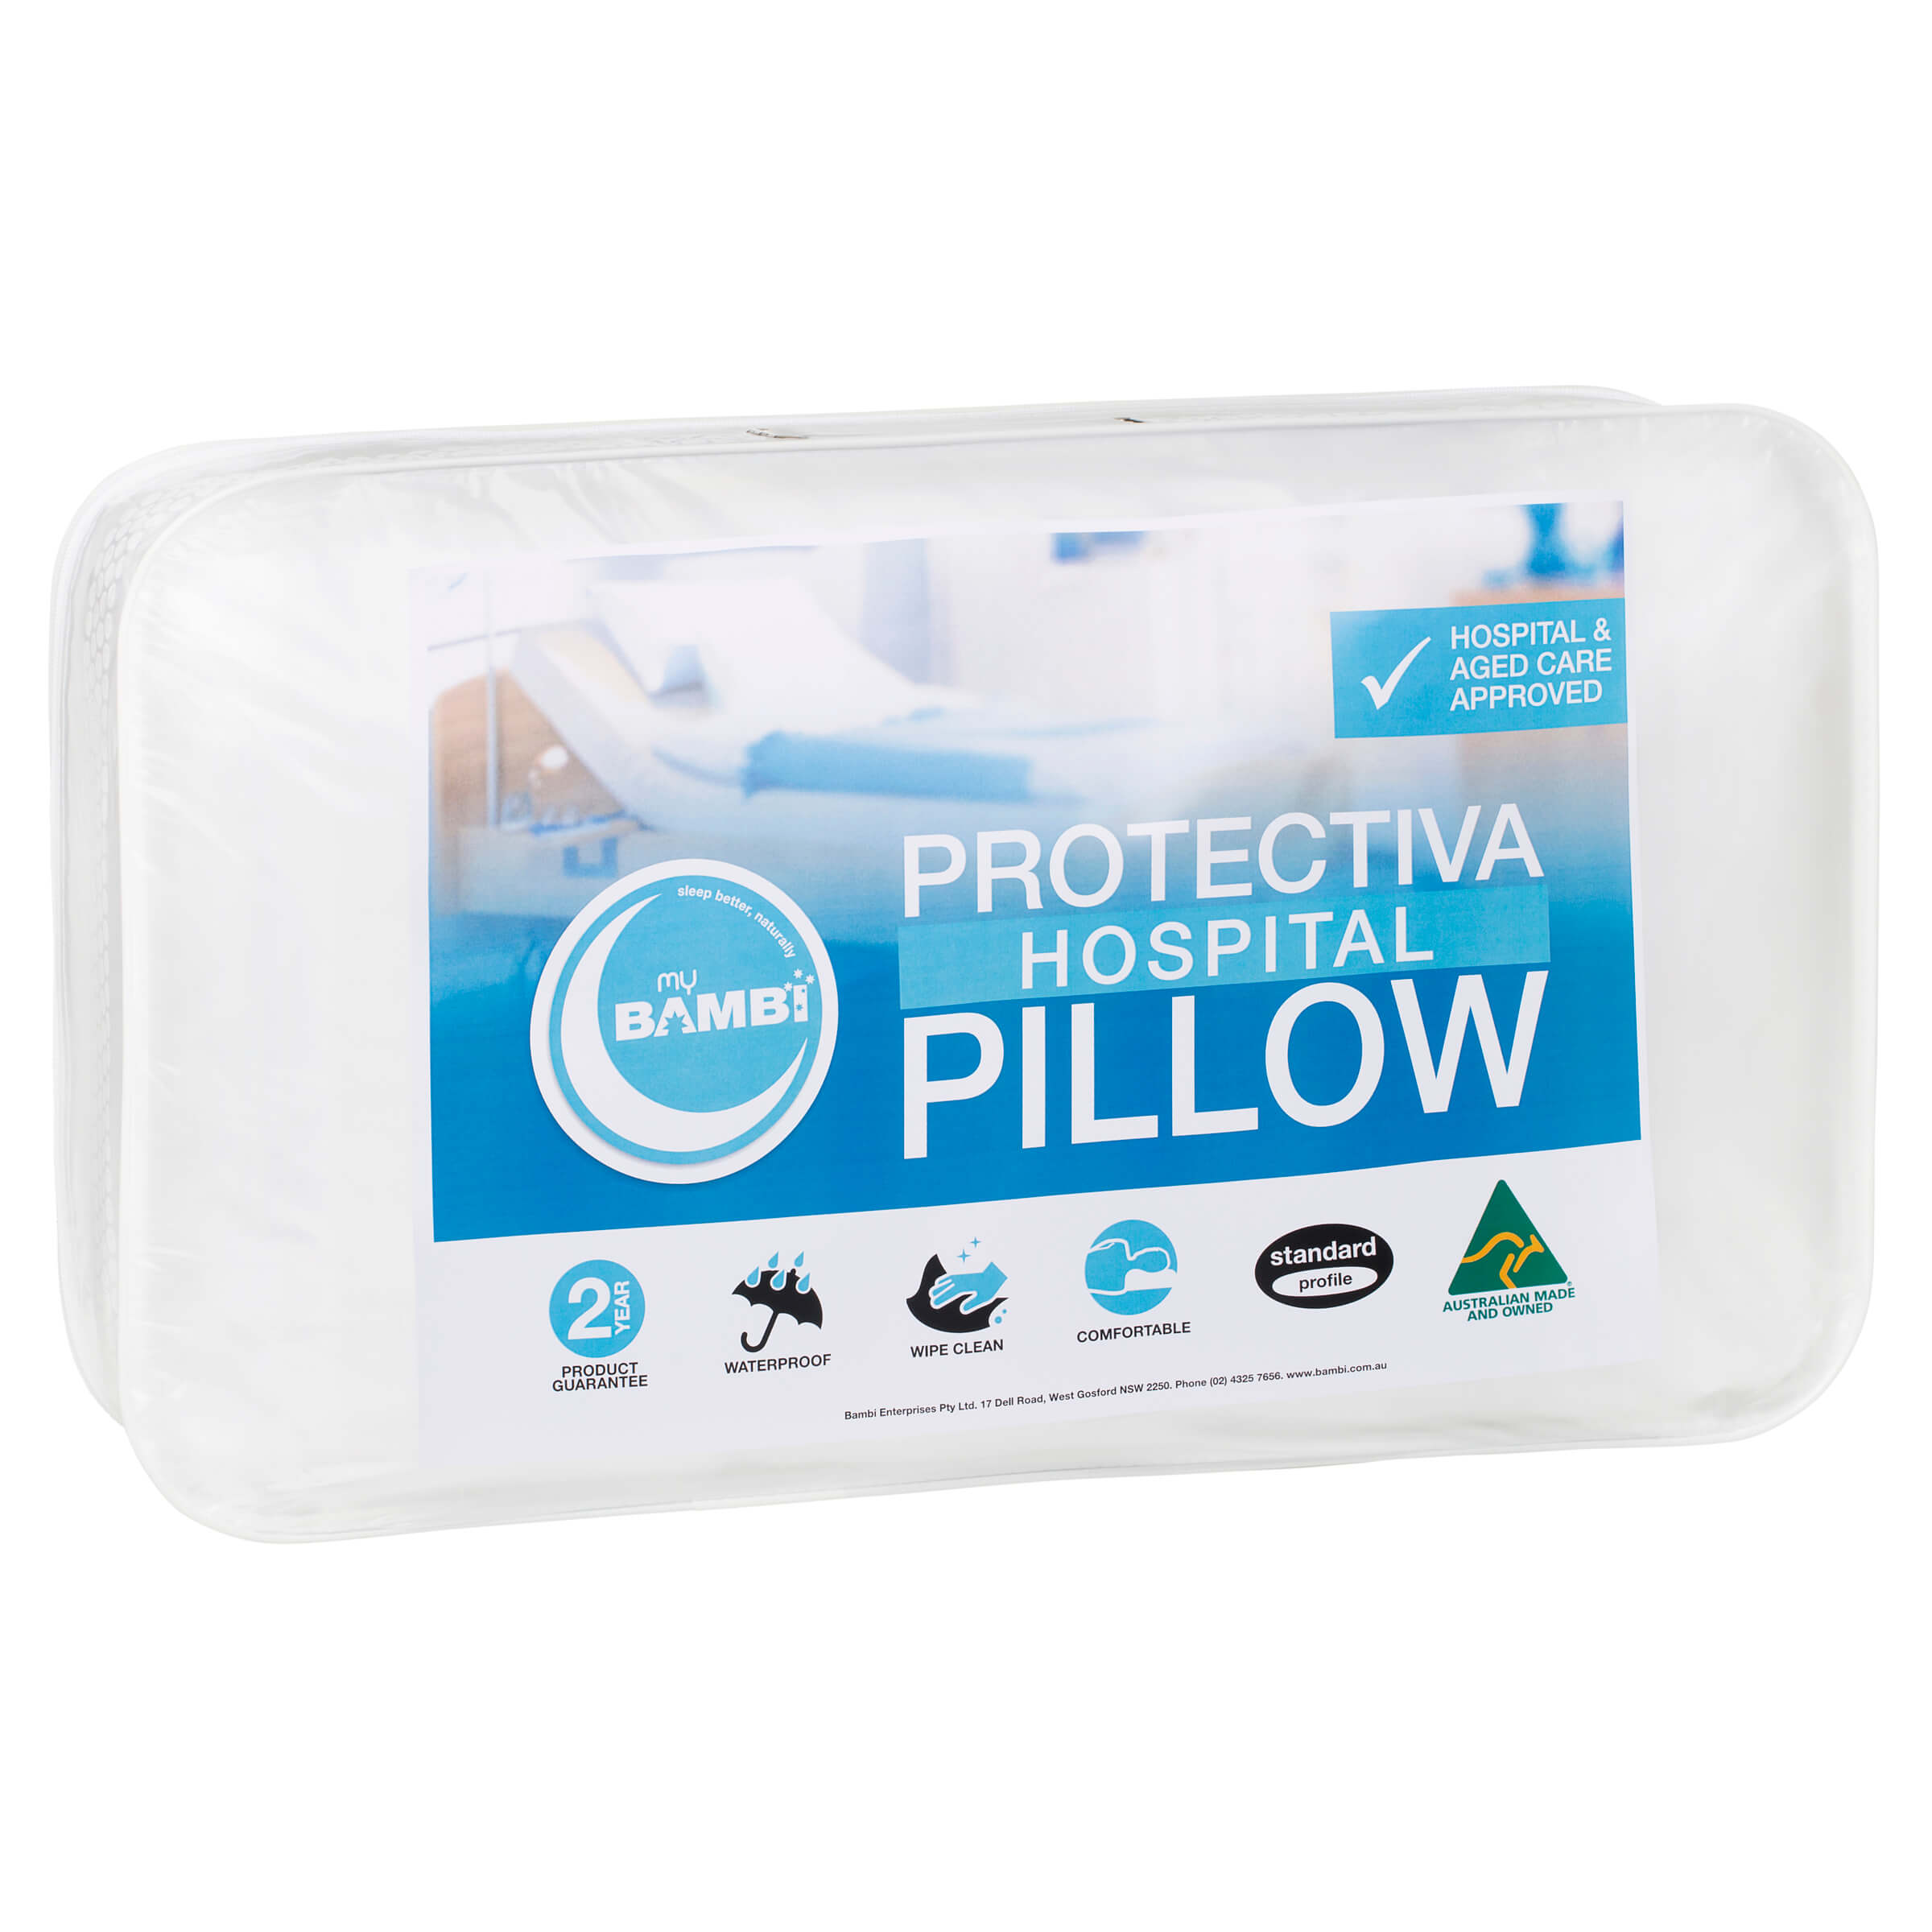 Protectiva Hospital Pillows